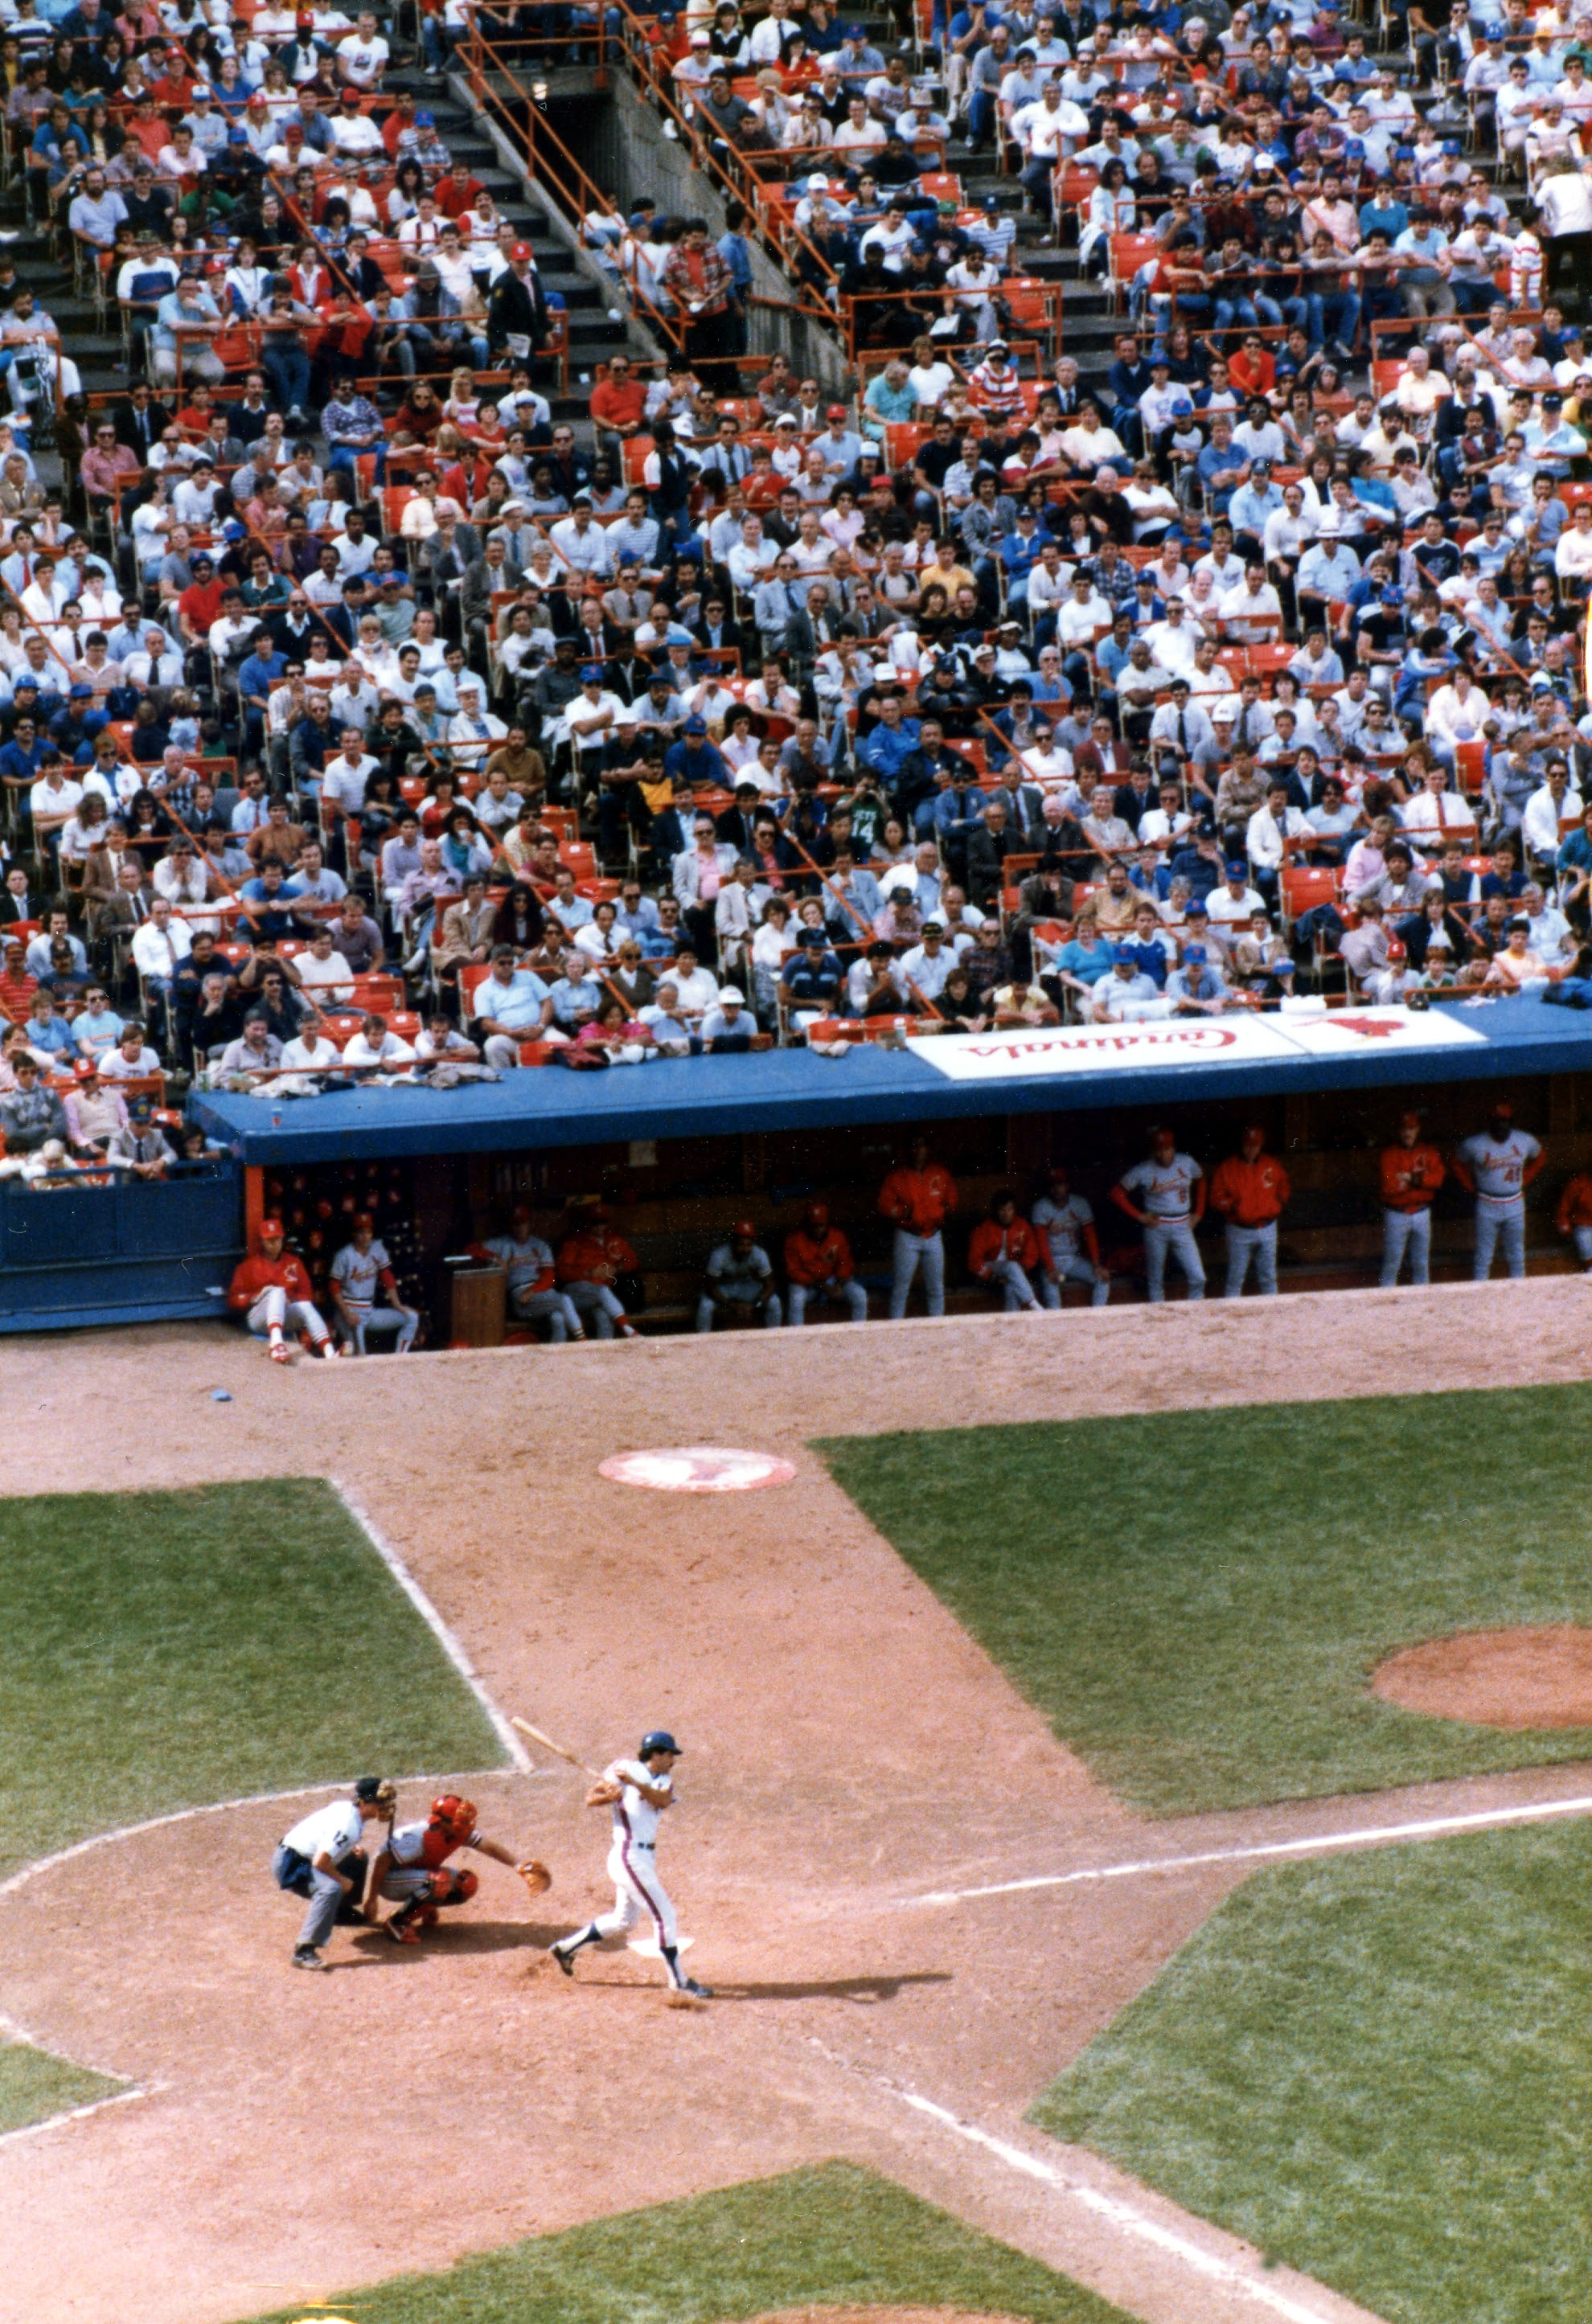 A baseball game at Shea Stadium